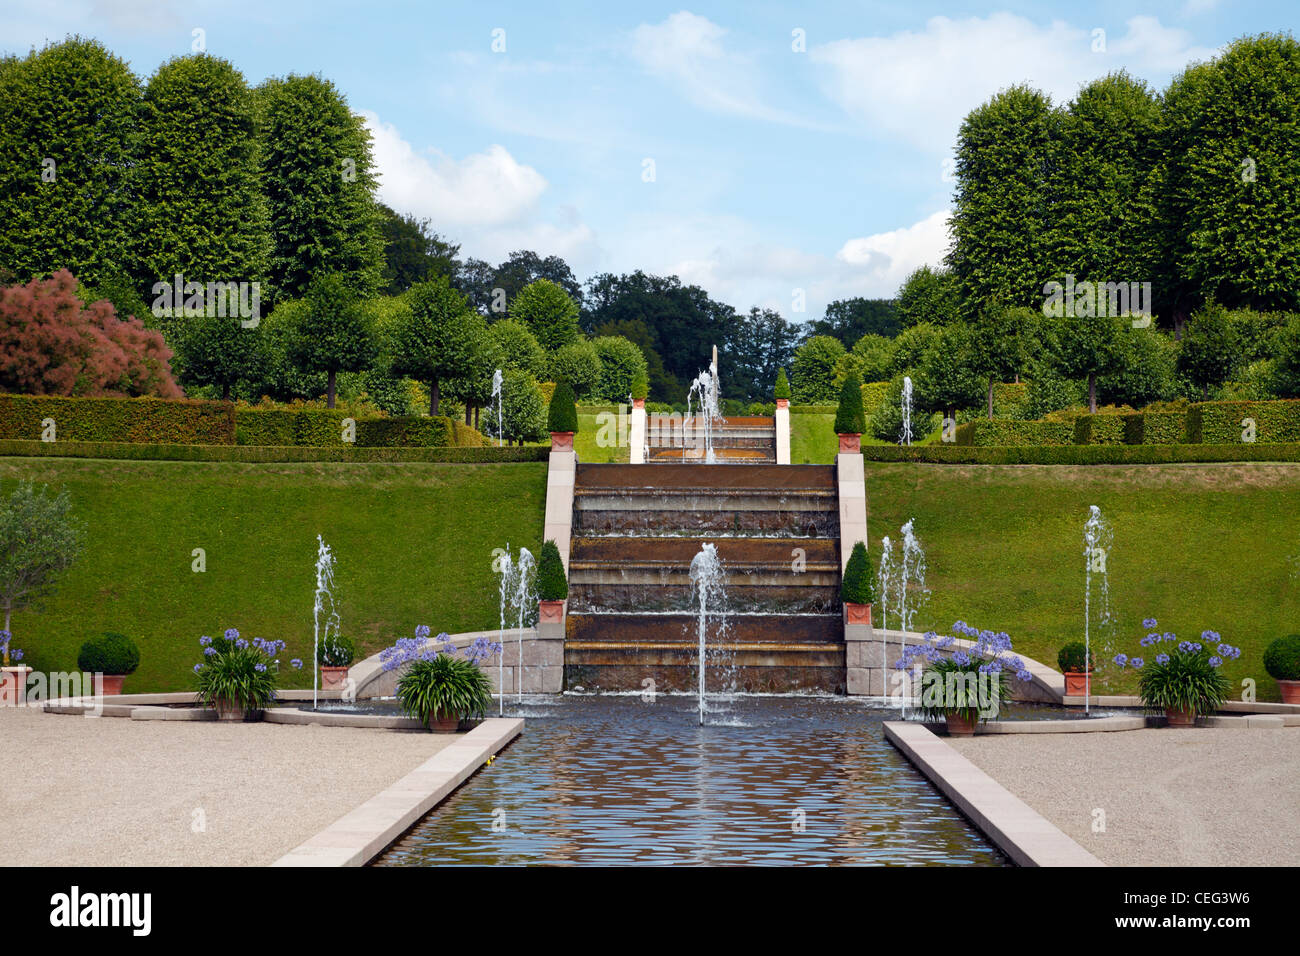 The cascade in The Baroque Garden at The Frederiksborg Castle in Hillerød, Denmark - Stock Image